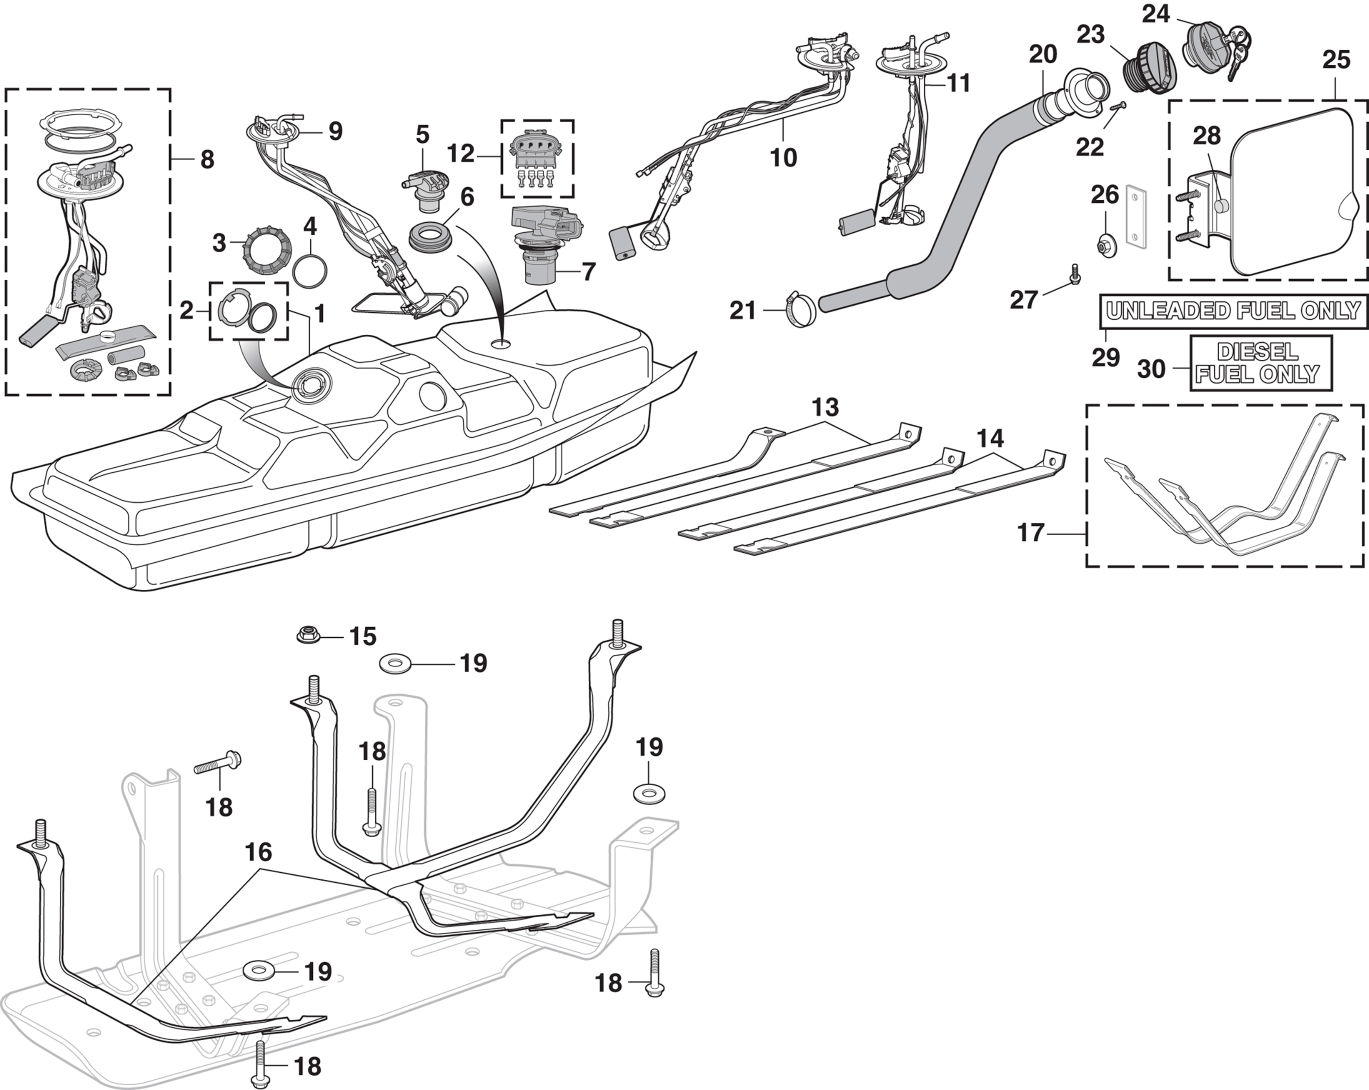 Side-Mounted Gas Tank and Components